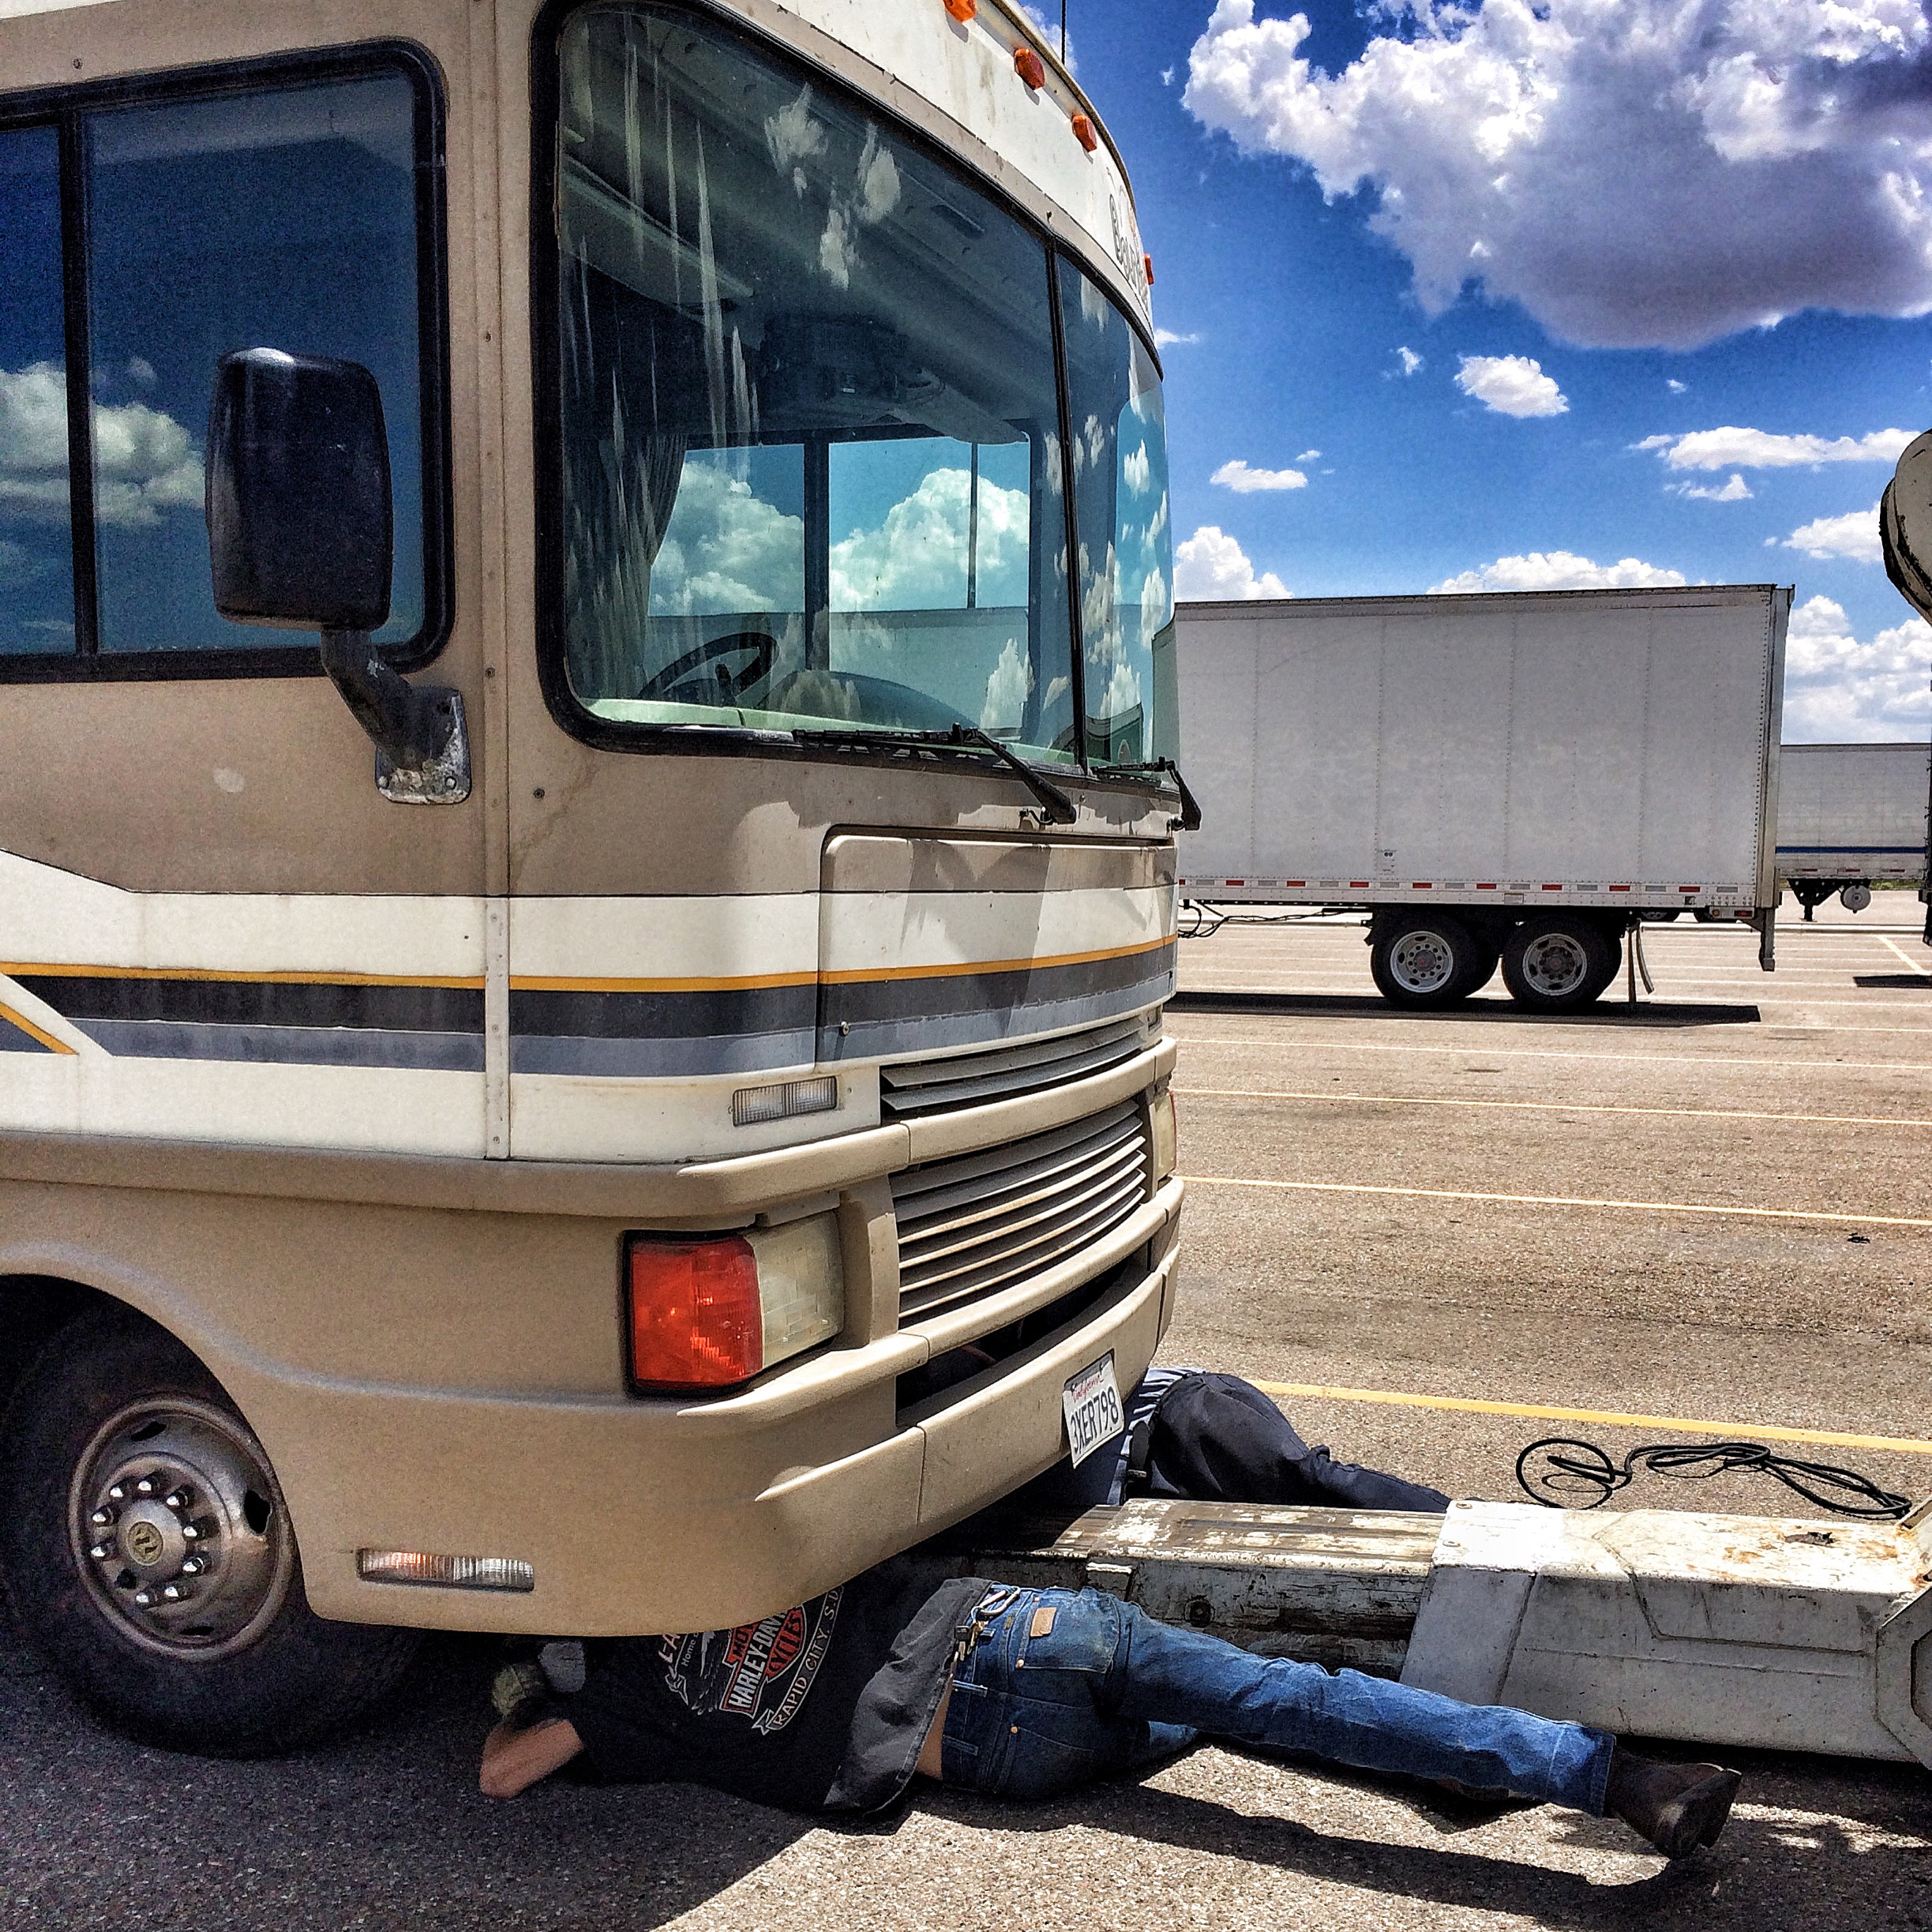 My caption for this photo that day on Instagram:  At one point while these nice guys struggled with my stubborn motorhome to get her towable, I kind of hiccup-giggled because the thought crossed my mind that my diva motorhome just wanted men underneath her again. That was better than screaming to the heavens or dissolving into crying fits, but those emotive states are rather near the surface just yet.